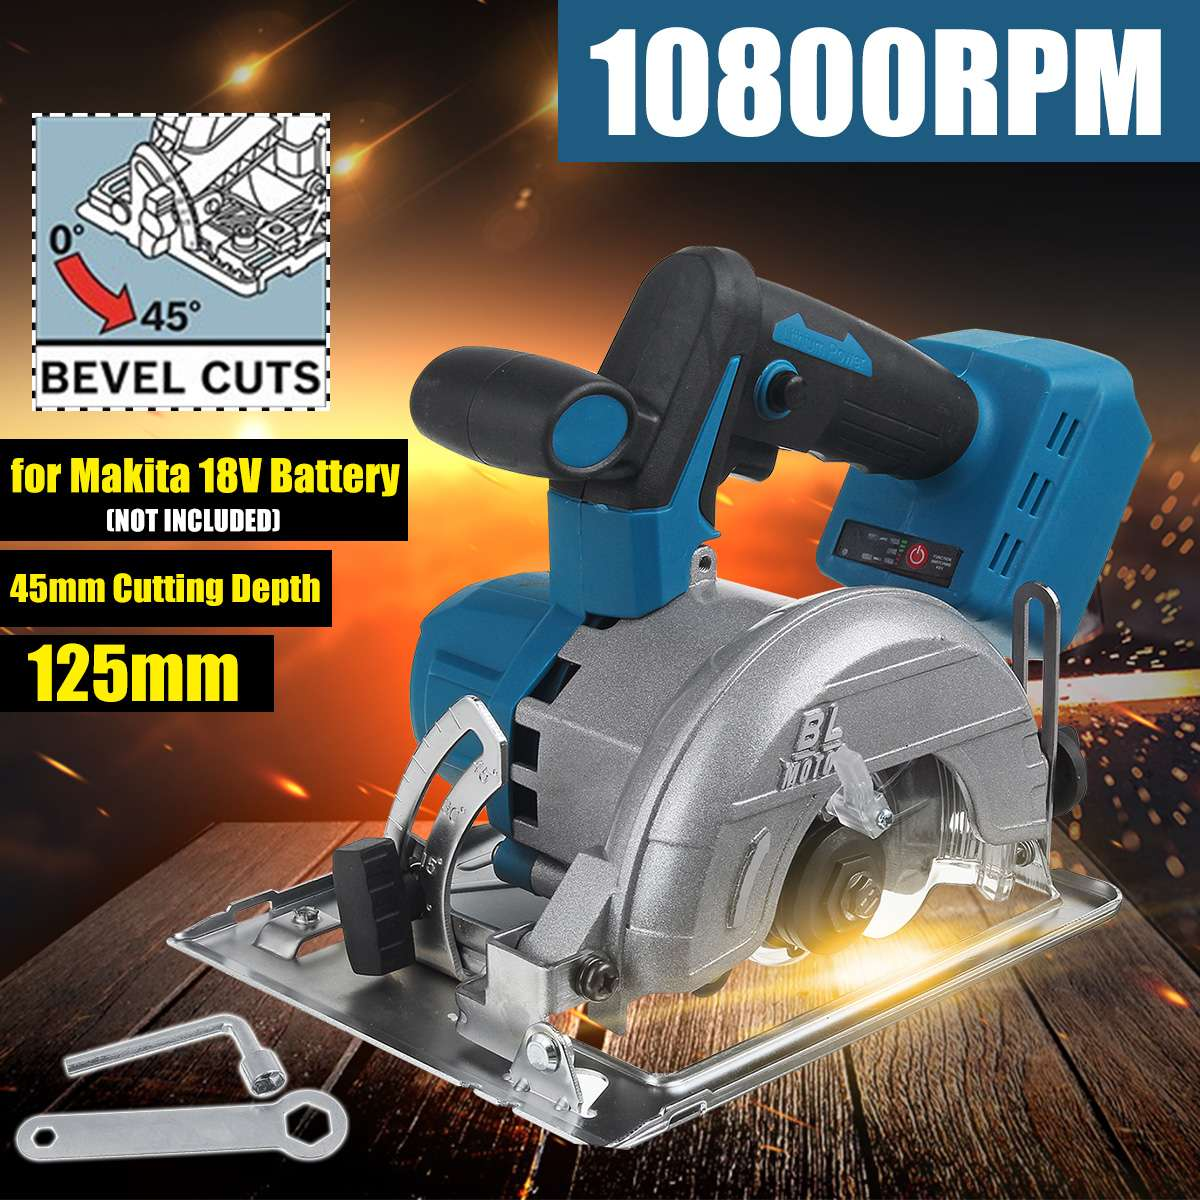 Adjustable Color Electric  18V 10800RPM 0 45   For  To  Makita Cordless 125mm Battery Cutter Circular    Machine Sawing   Randem Wood